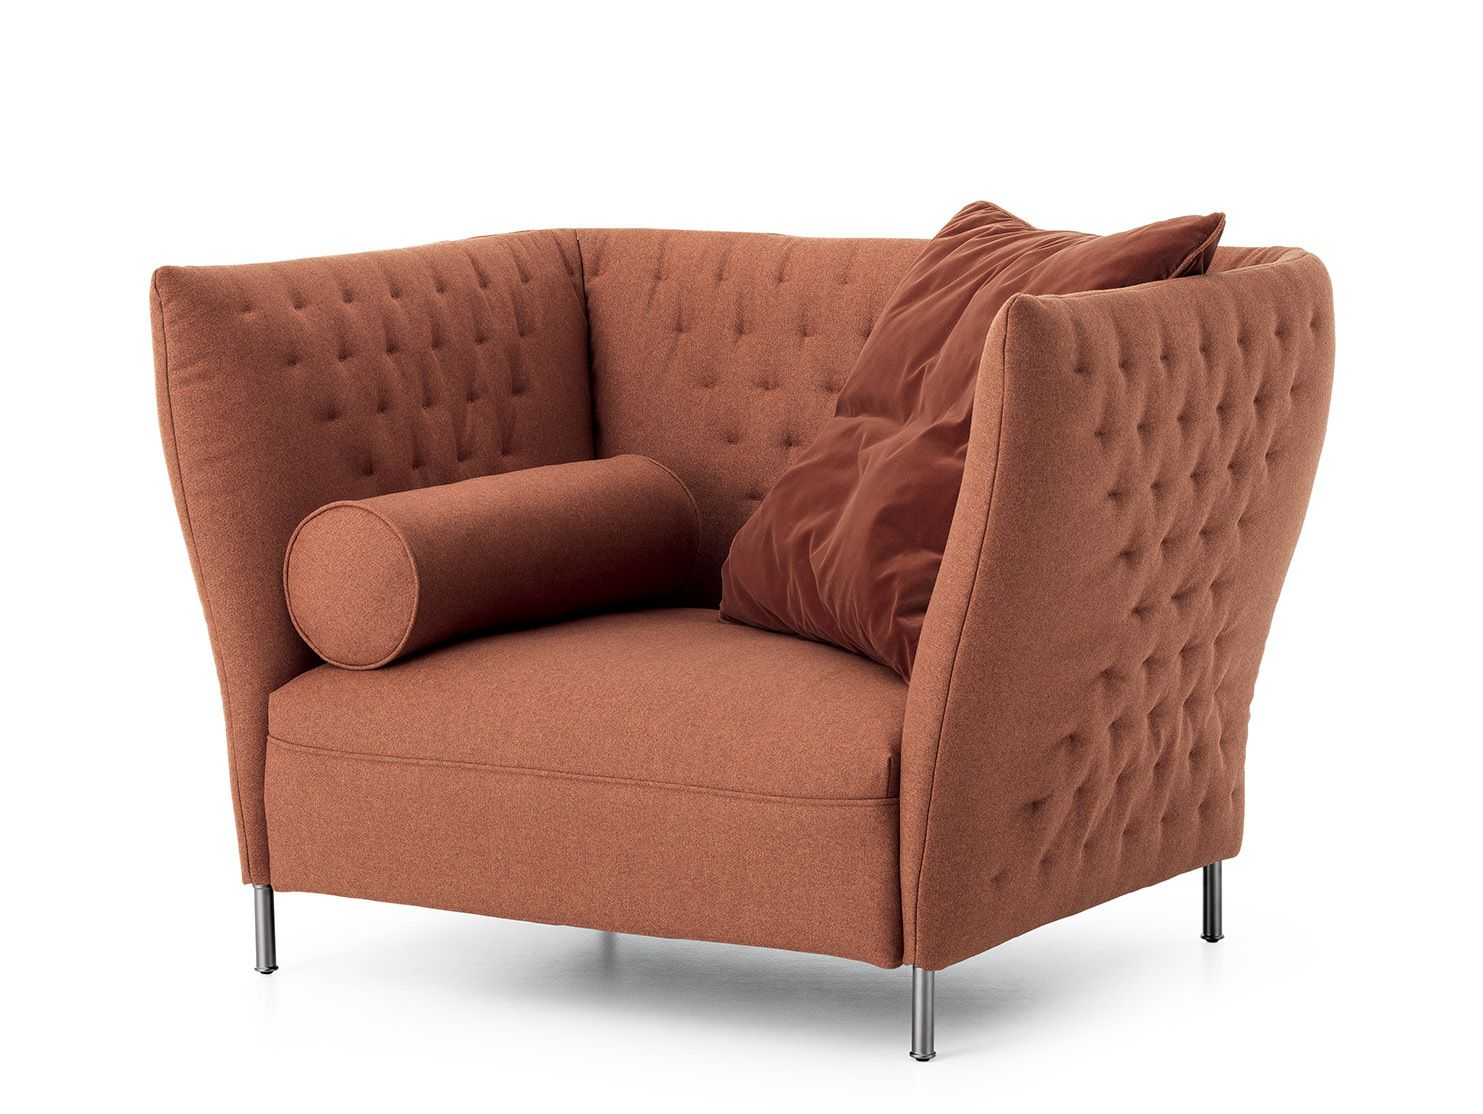 Acheter Chaise Frais Download the Catalogue and Request Prices Of Quilt